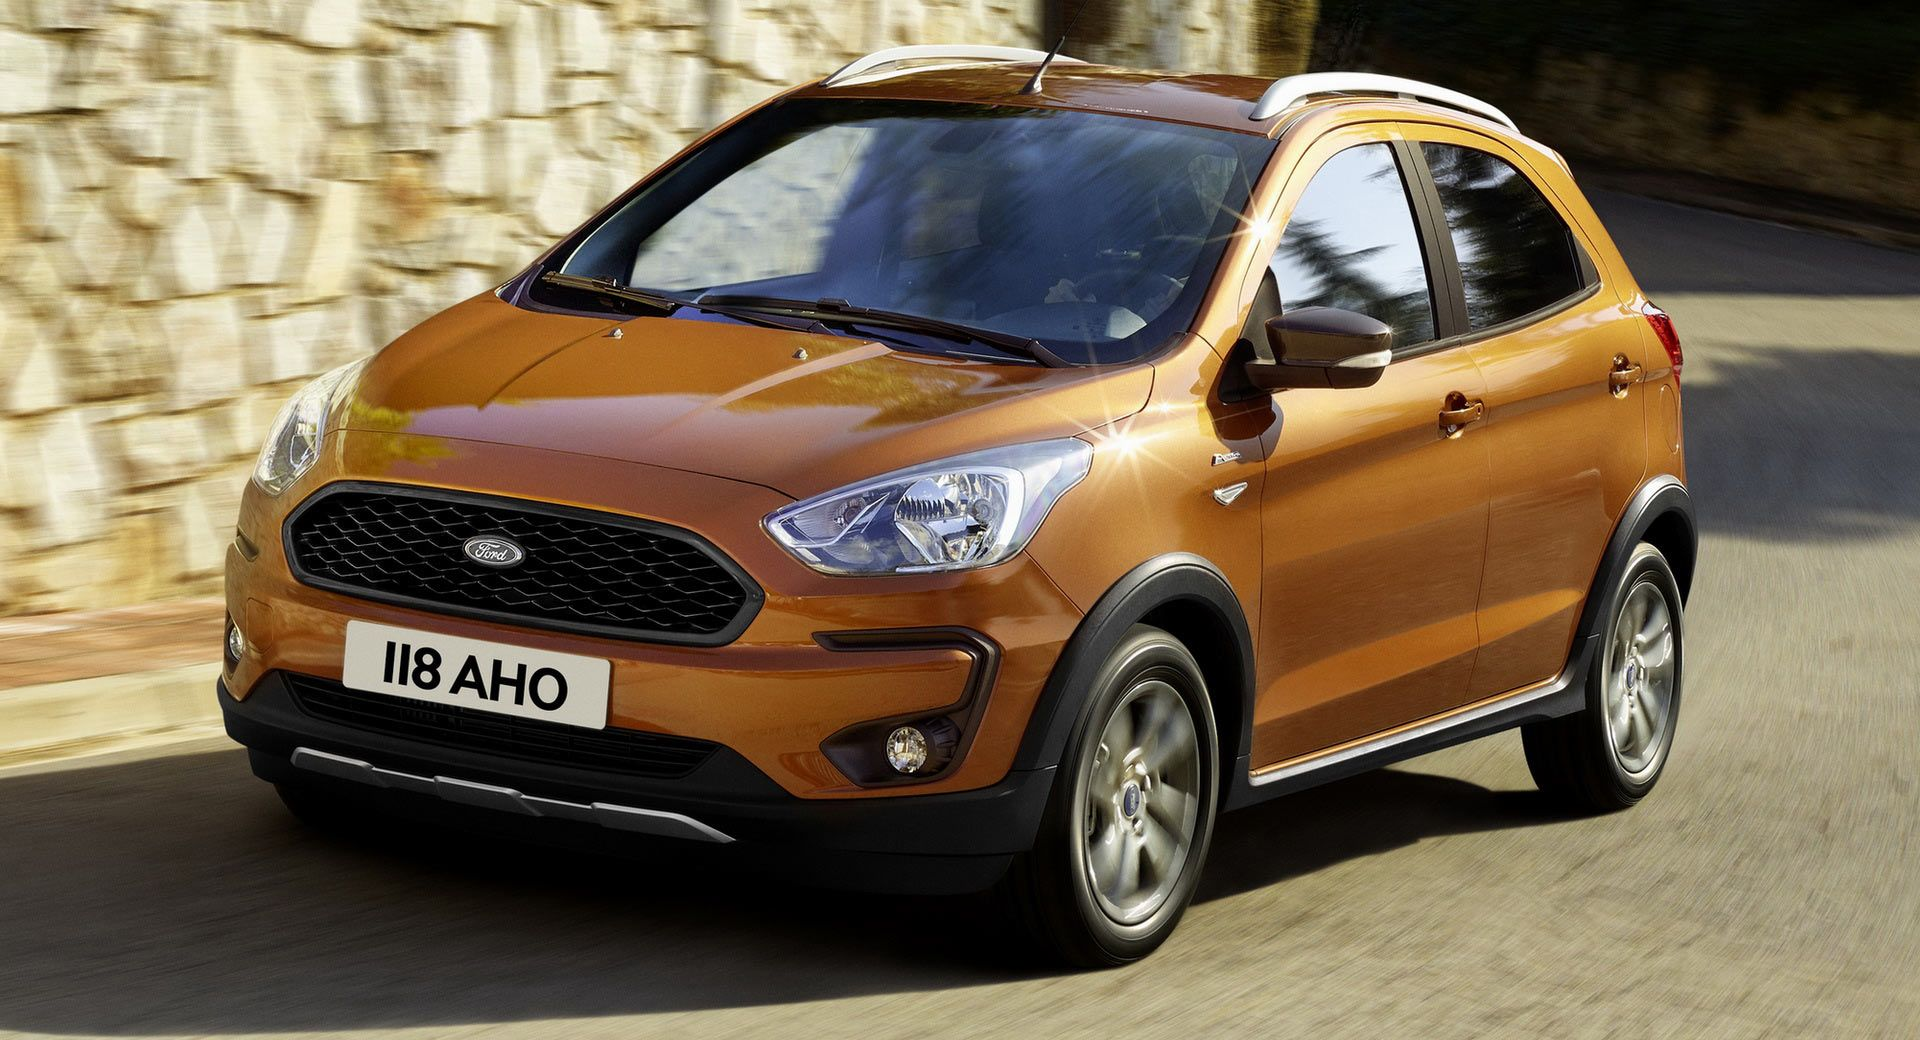 Ford Presents New Suv Styled Ka Active With More Ground Clearance New Suv Ford New Cars